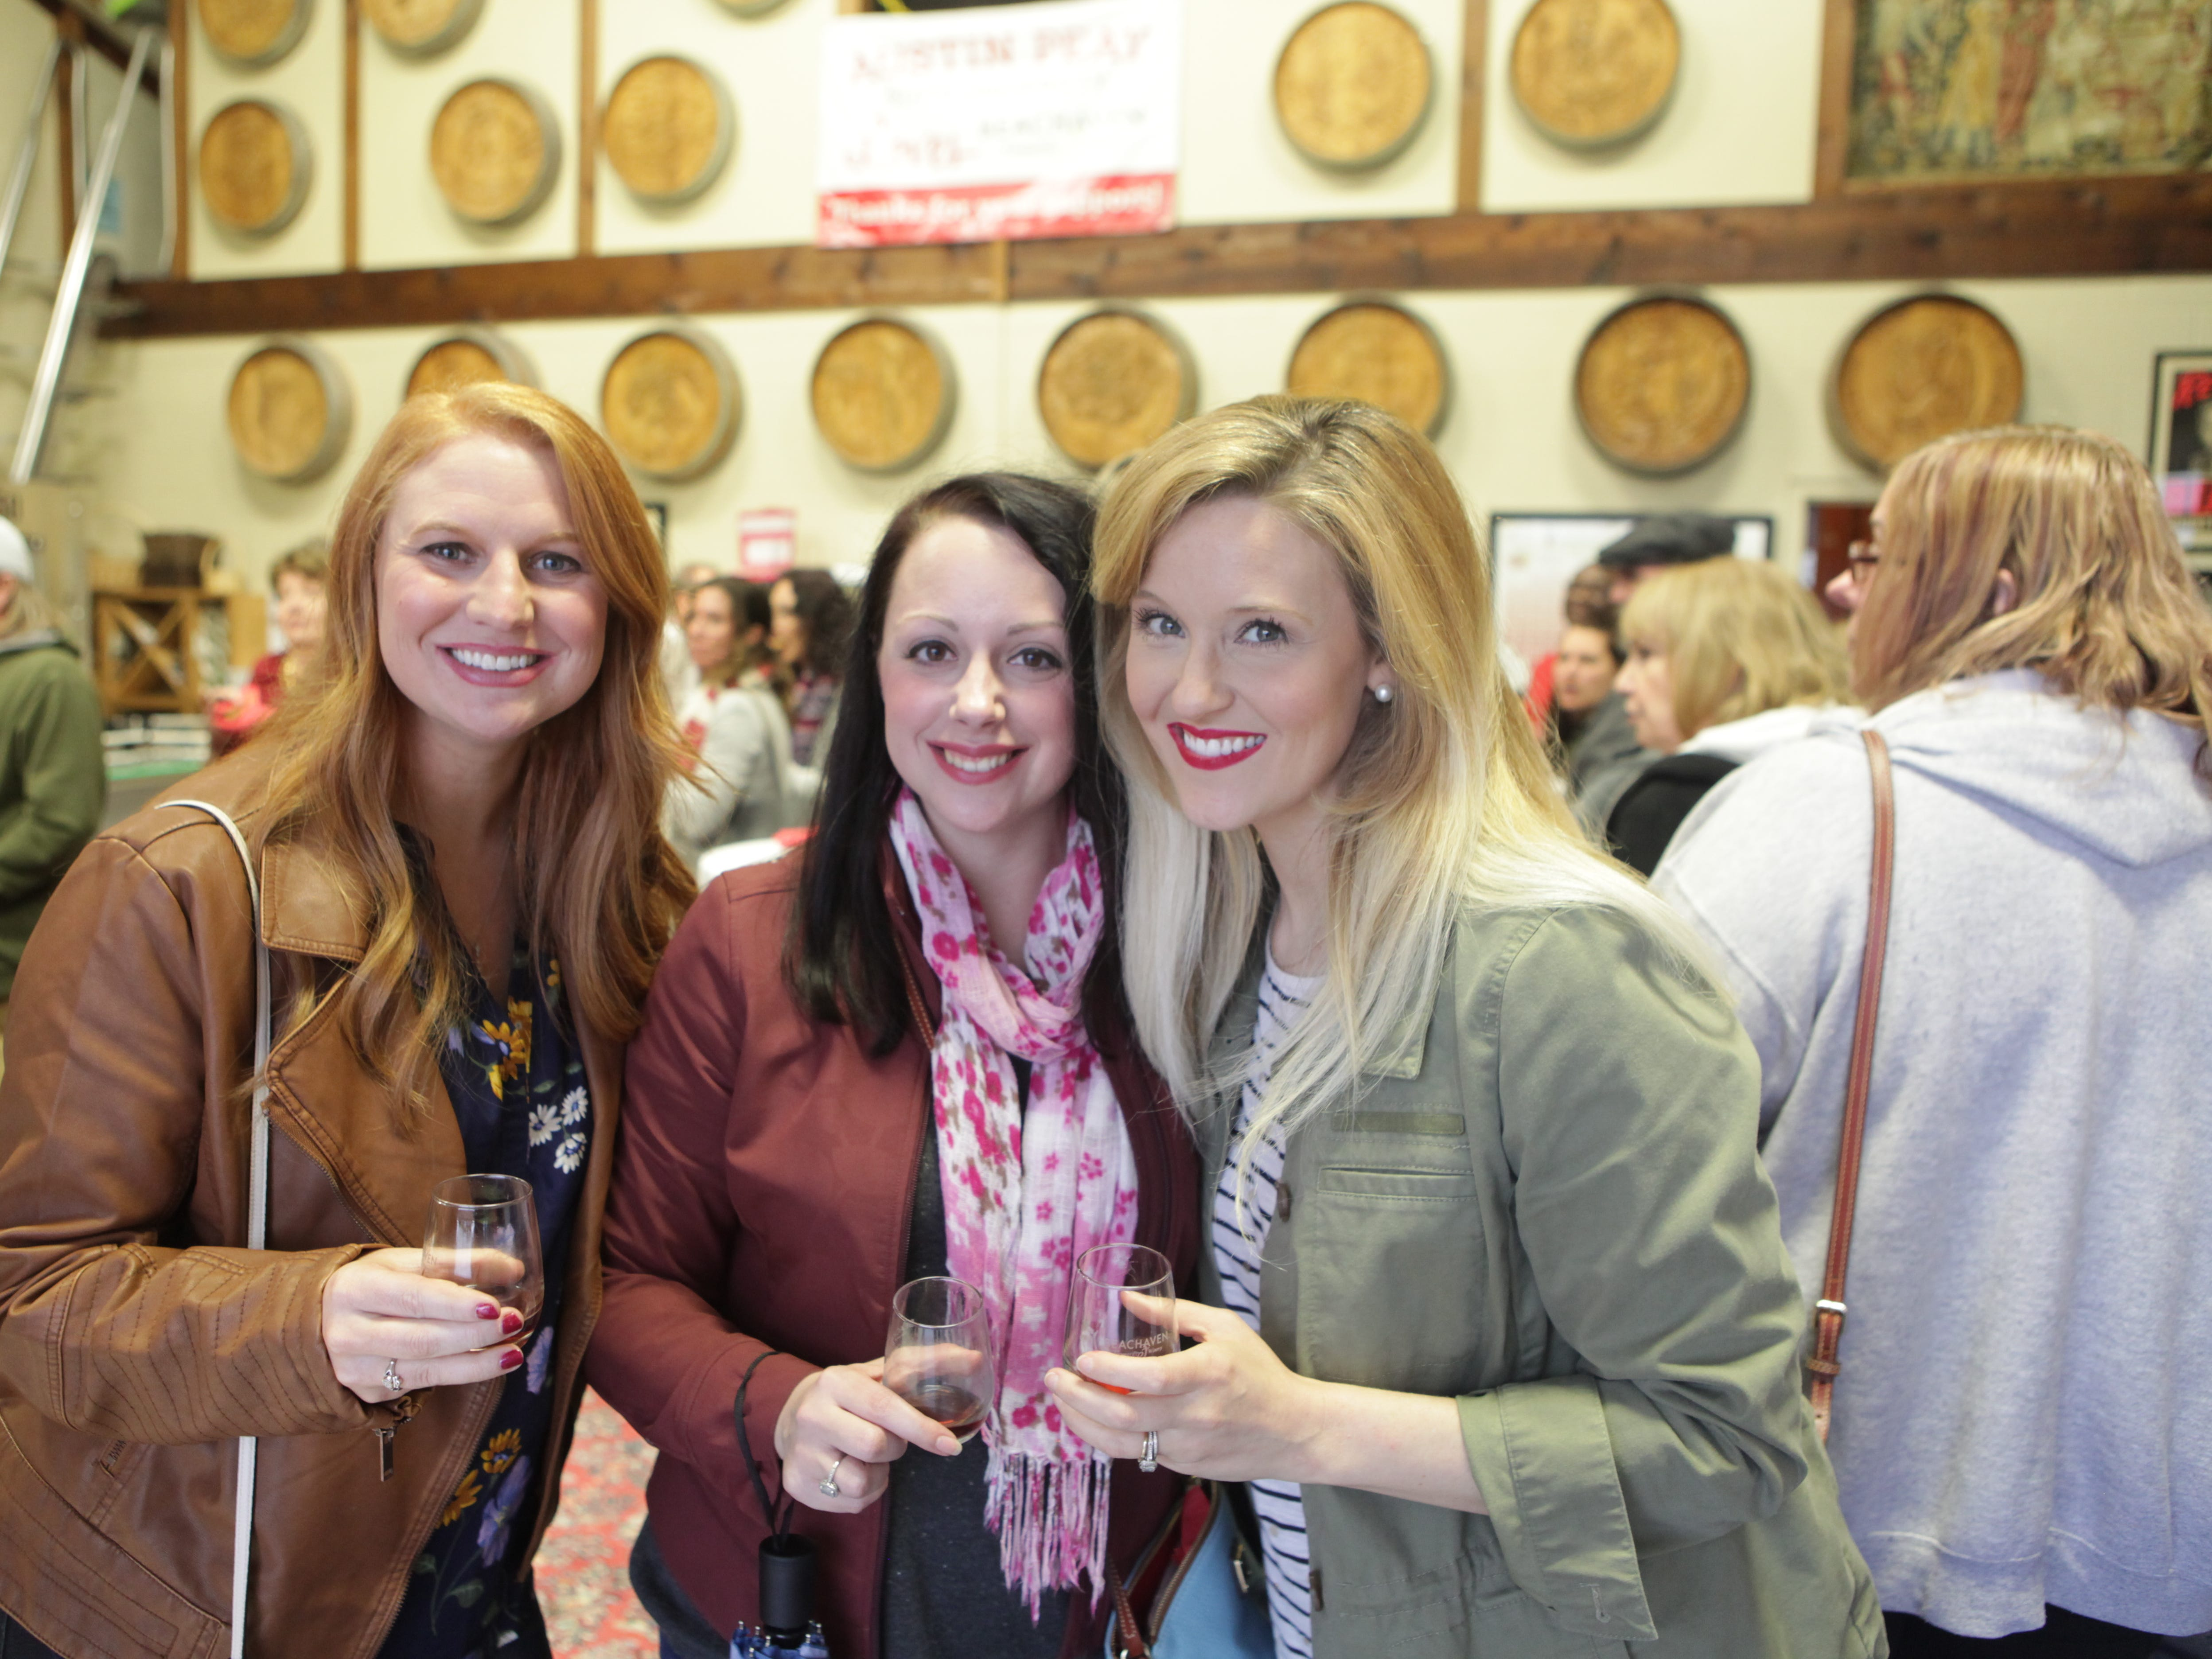 Angela Frazier, Morgan Stickard, and Caitlin Norwood at the Chocolate and Wine Tasting at Beachaven Winery on Sunday, Feb. 10, 2019.